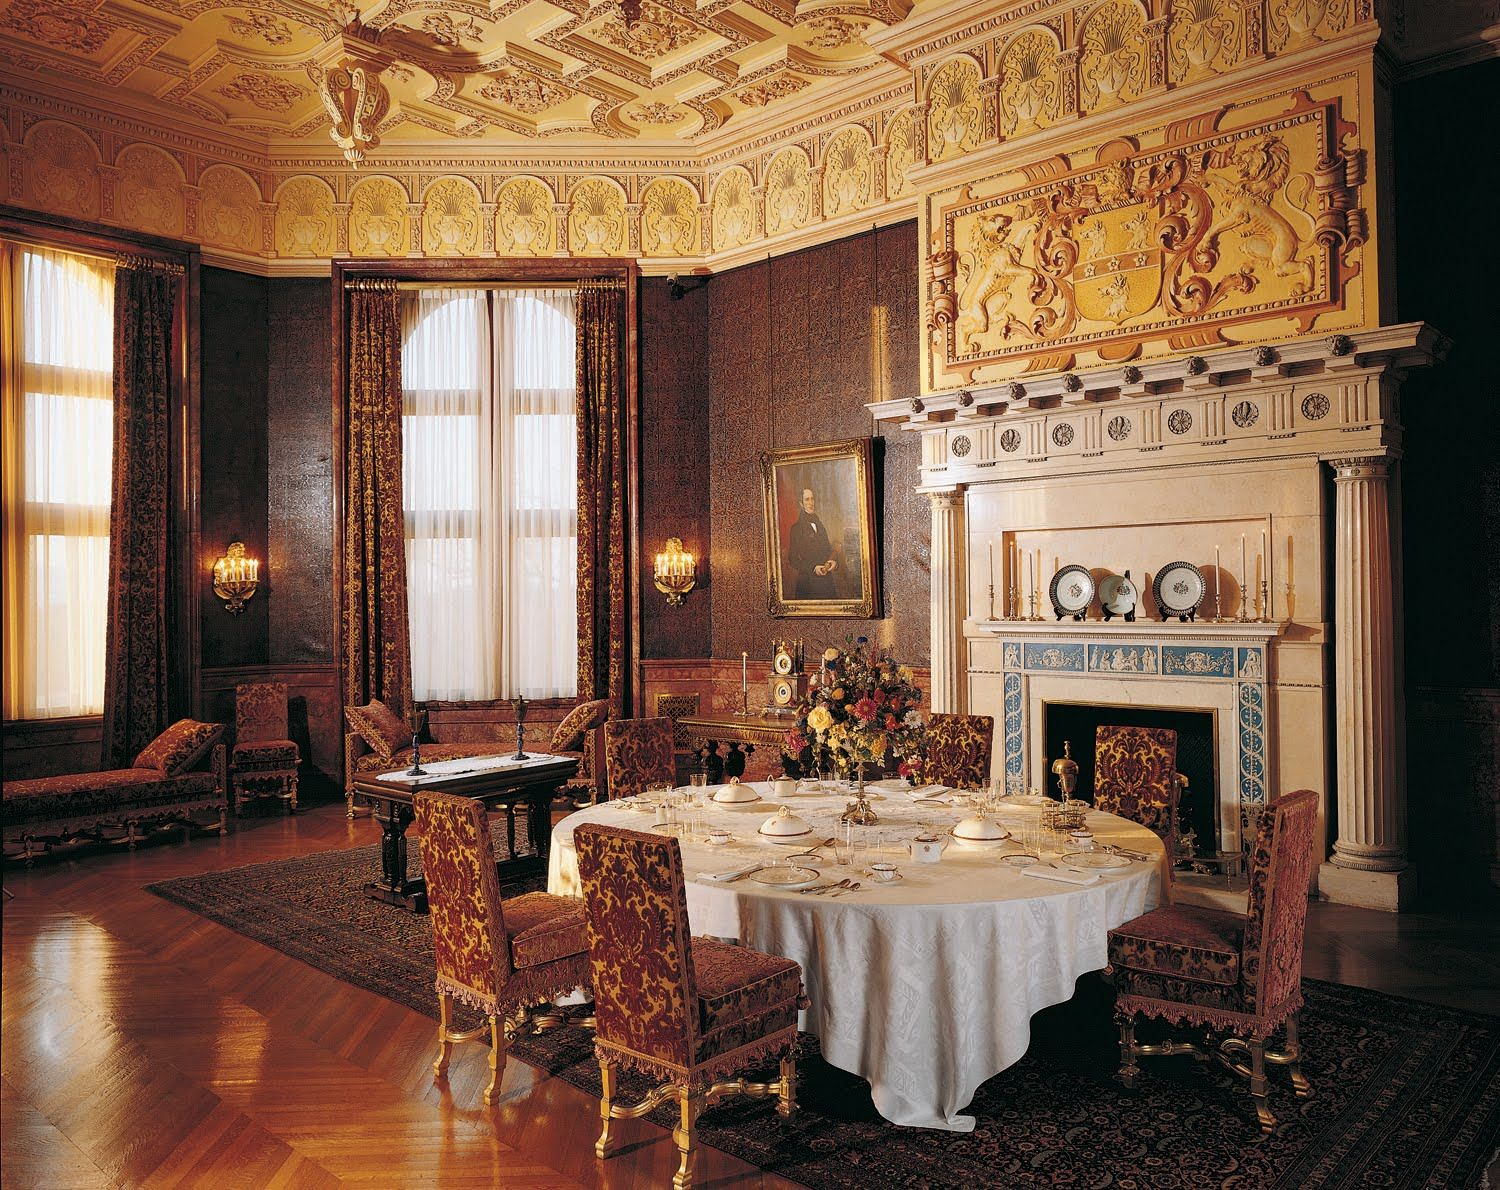 My Favorite Room In Biltmore The Breakfast Room. The Walls Are Completely  Covered In